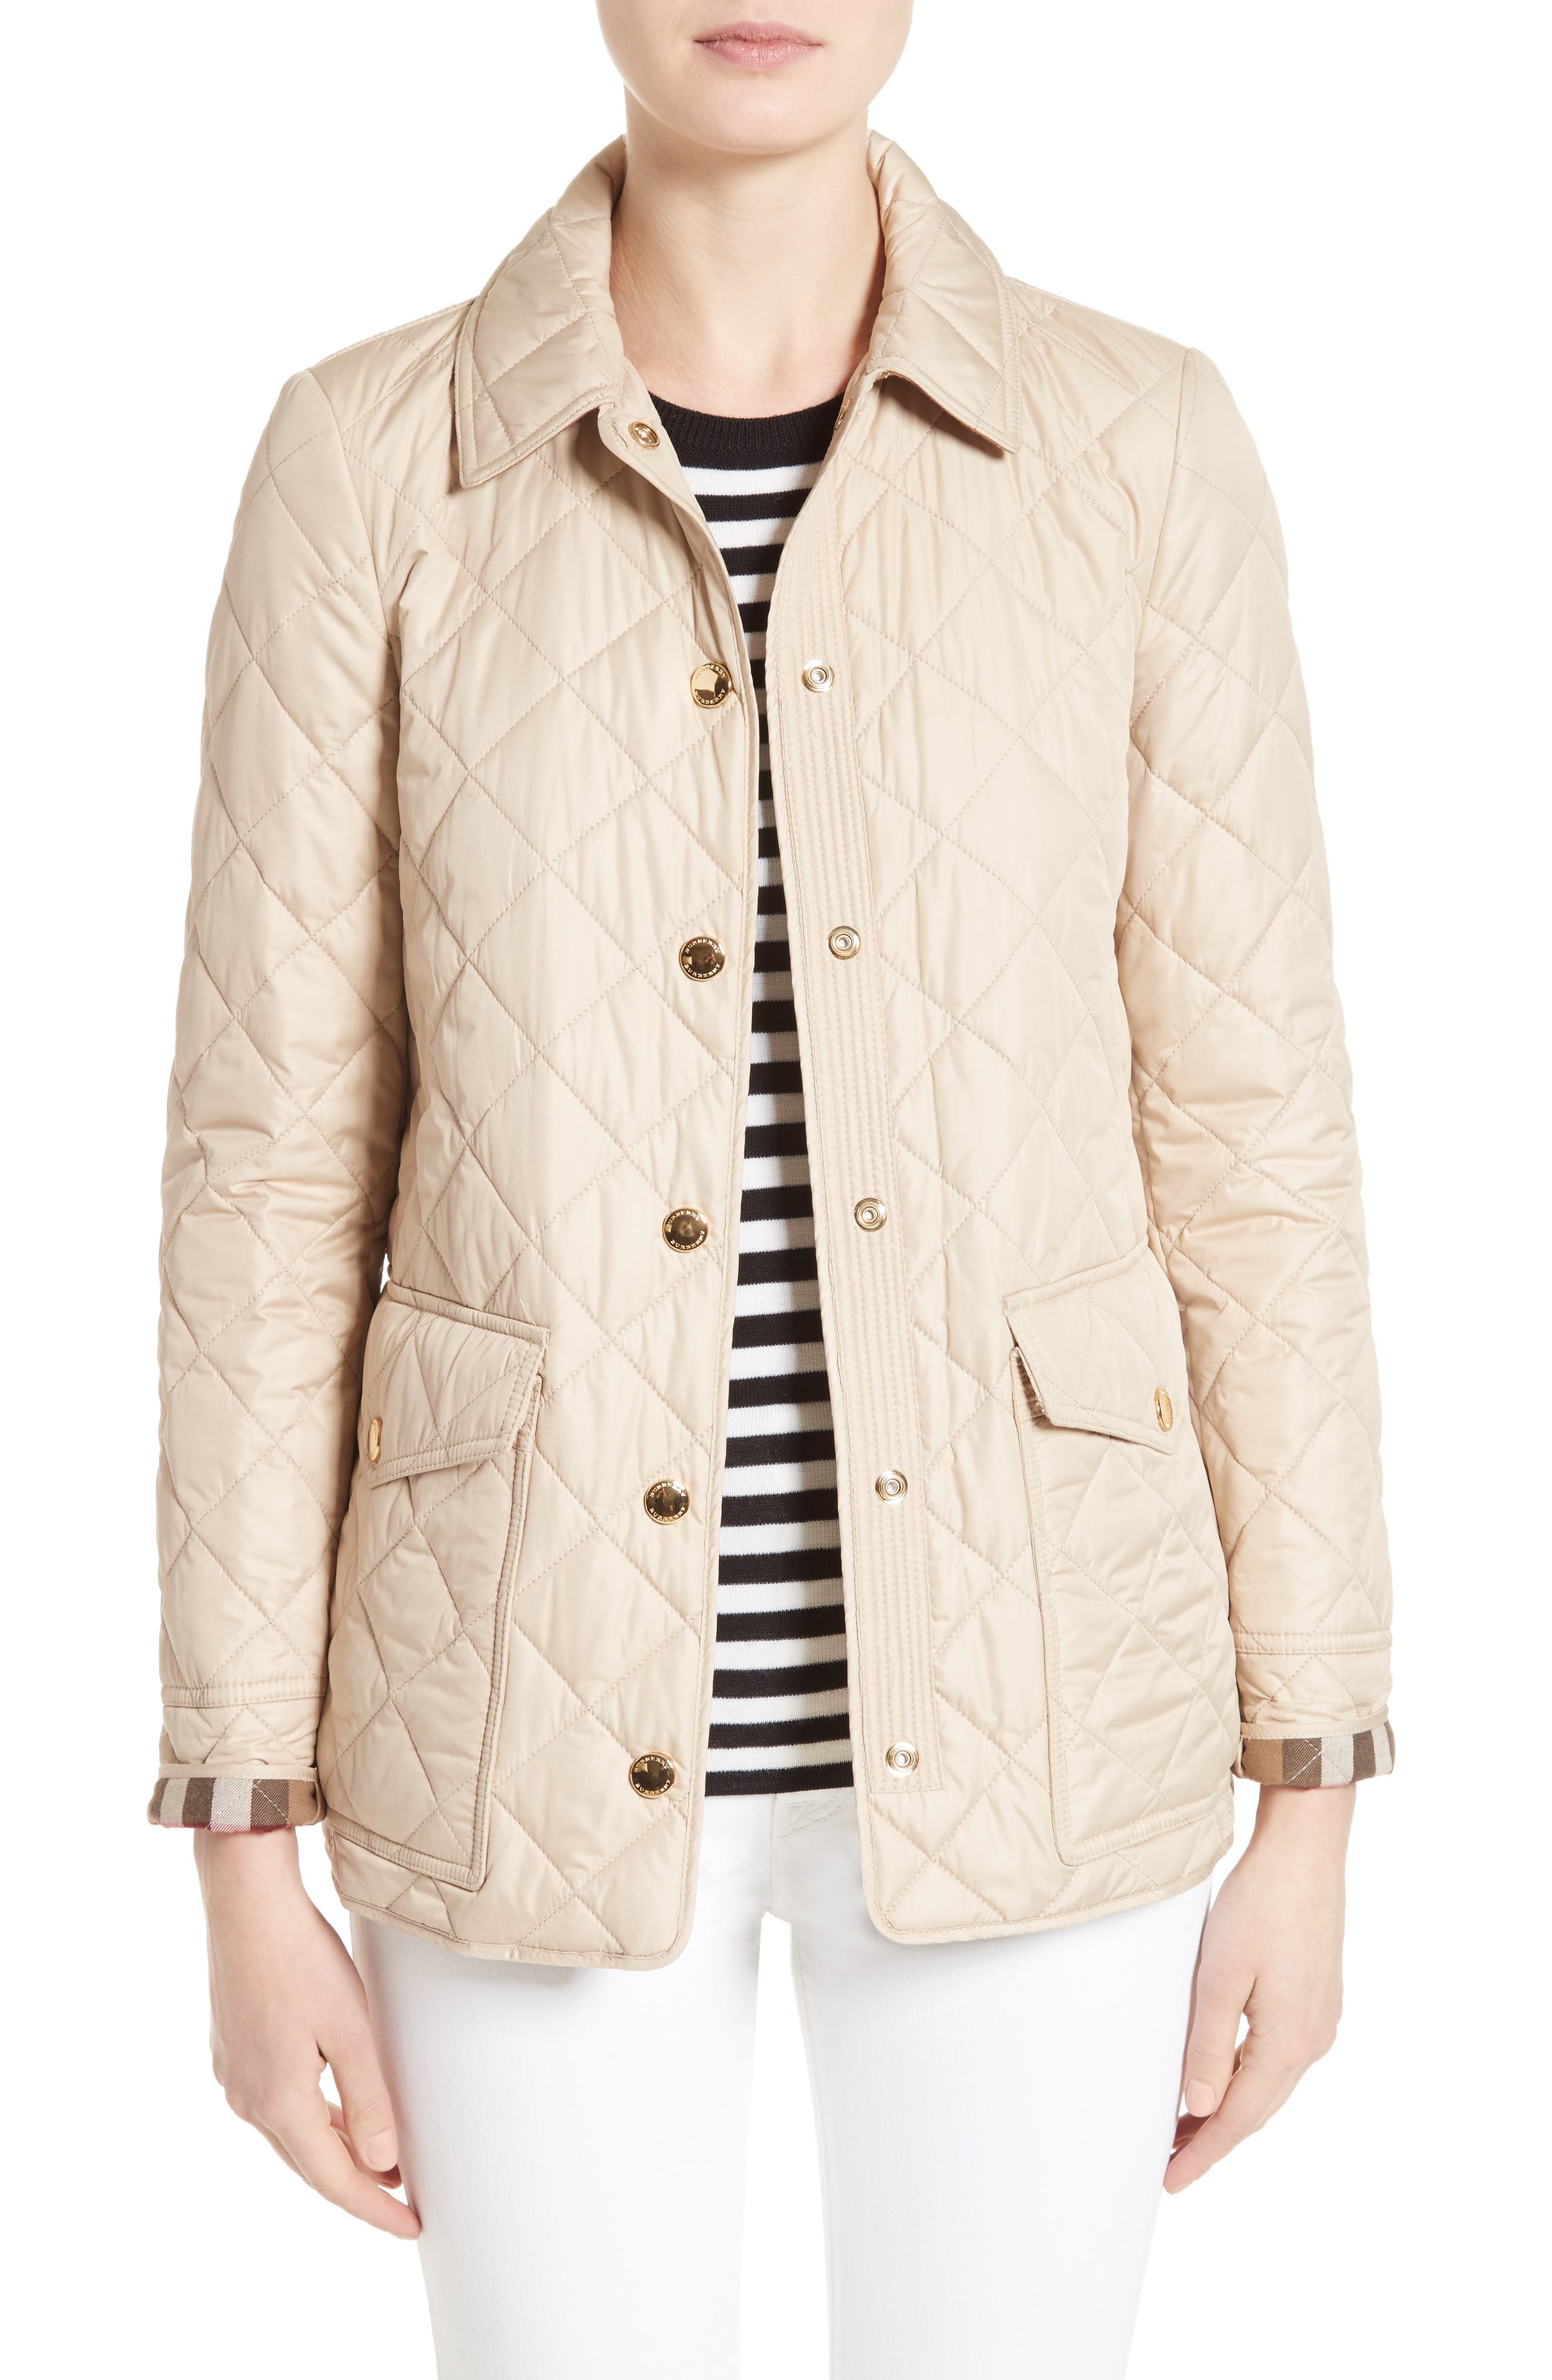 Westbridge Quilted Jacket,                         Main,                         color, 250